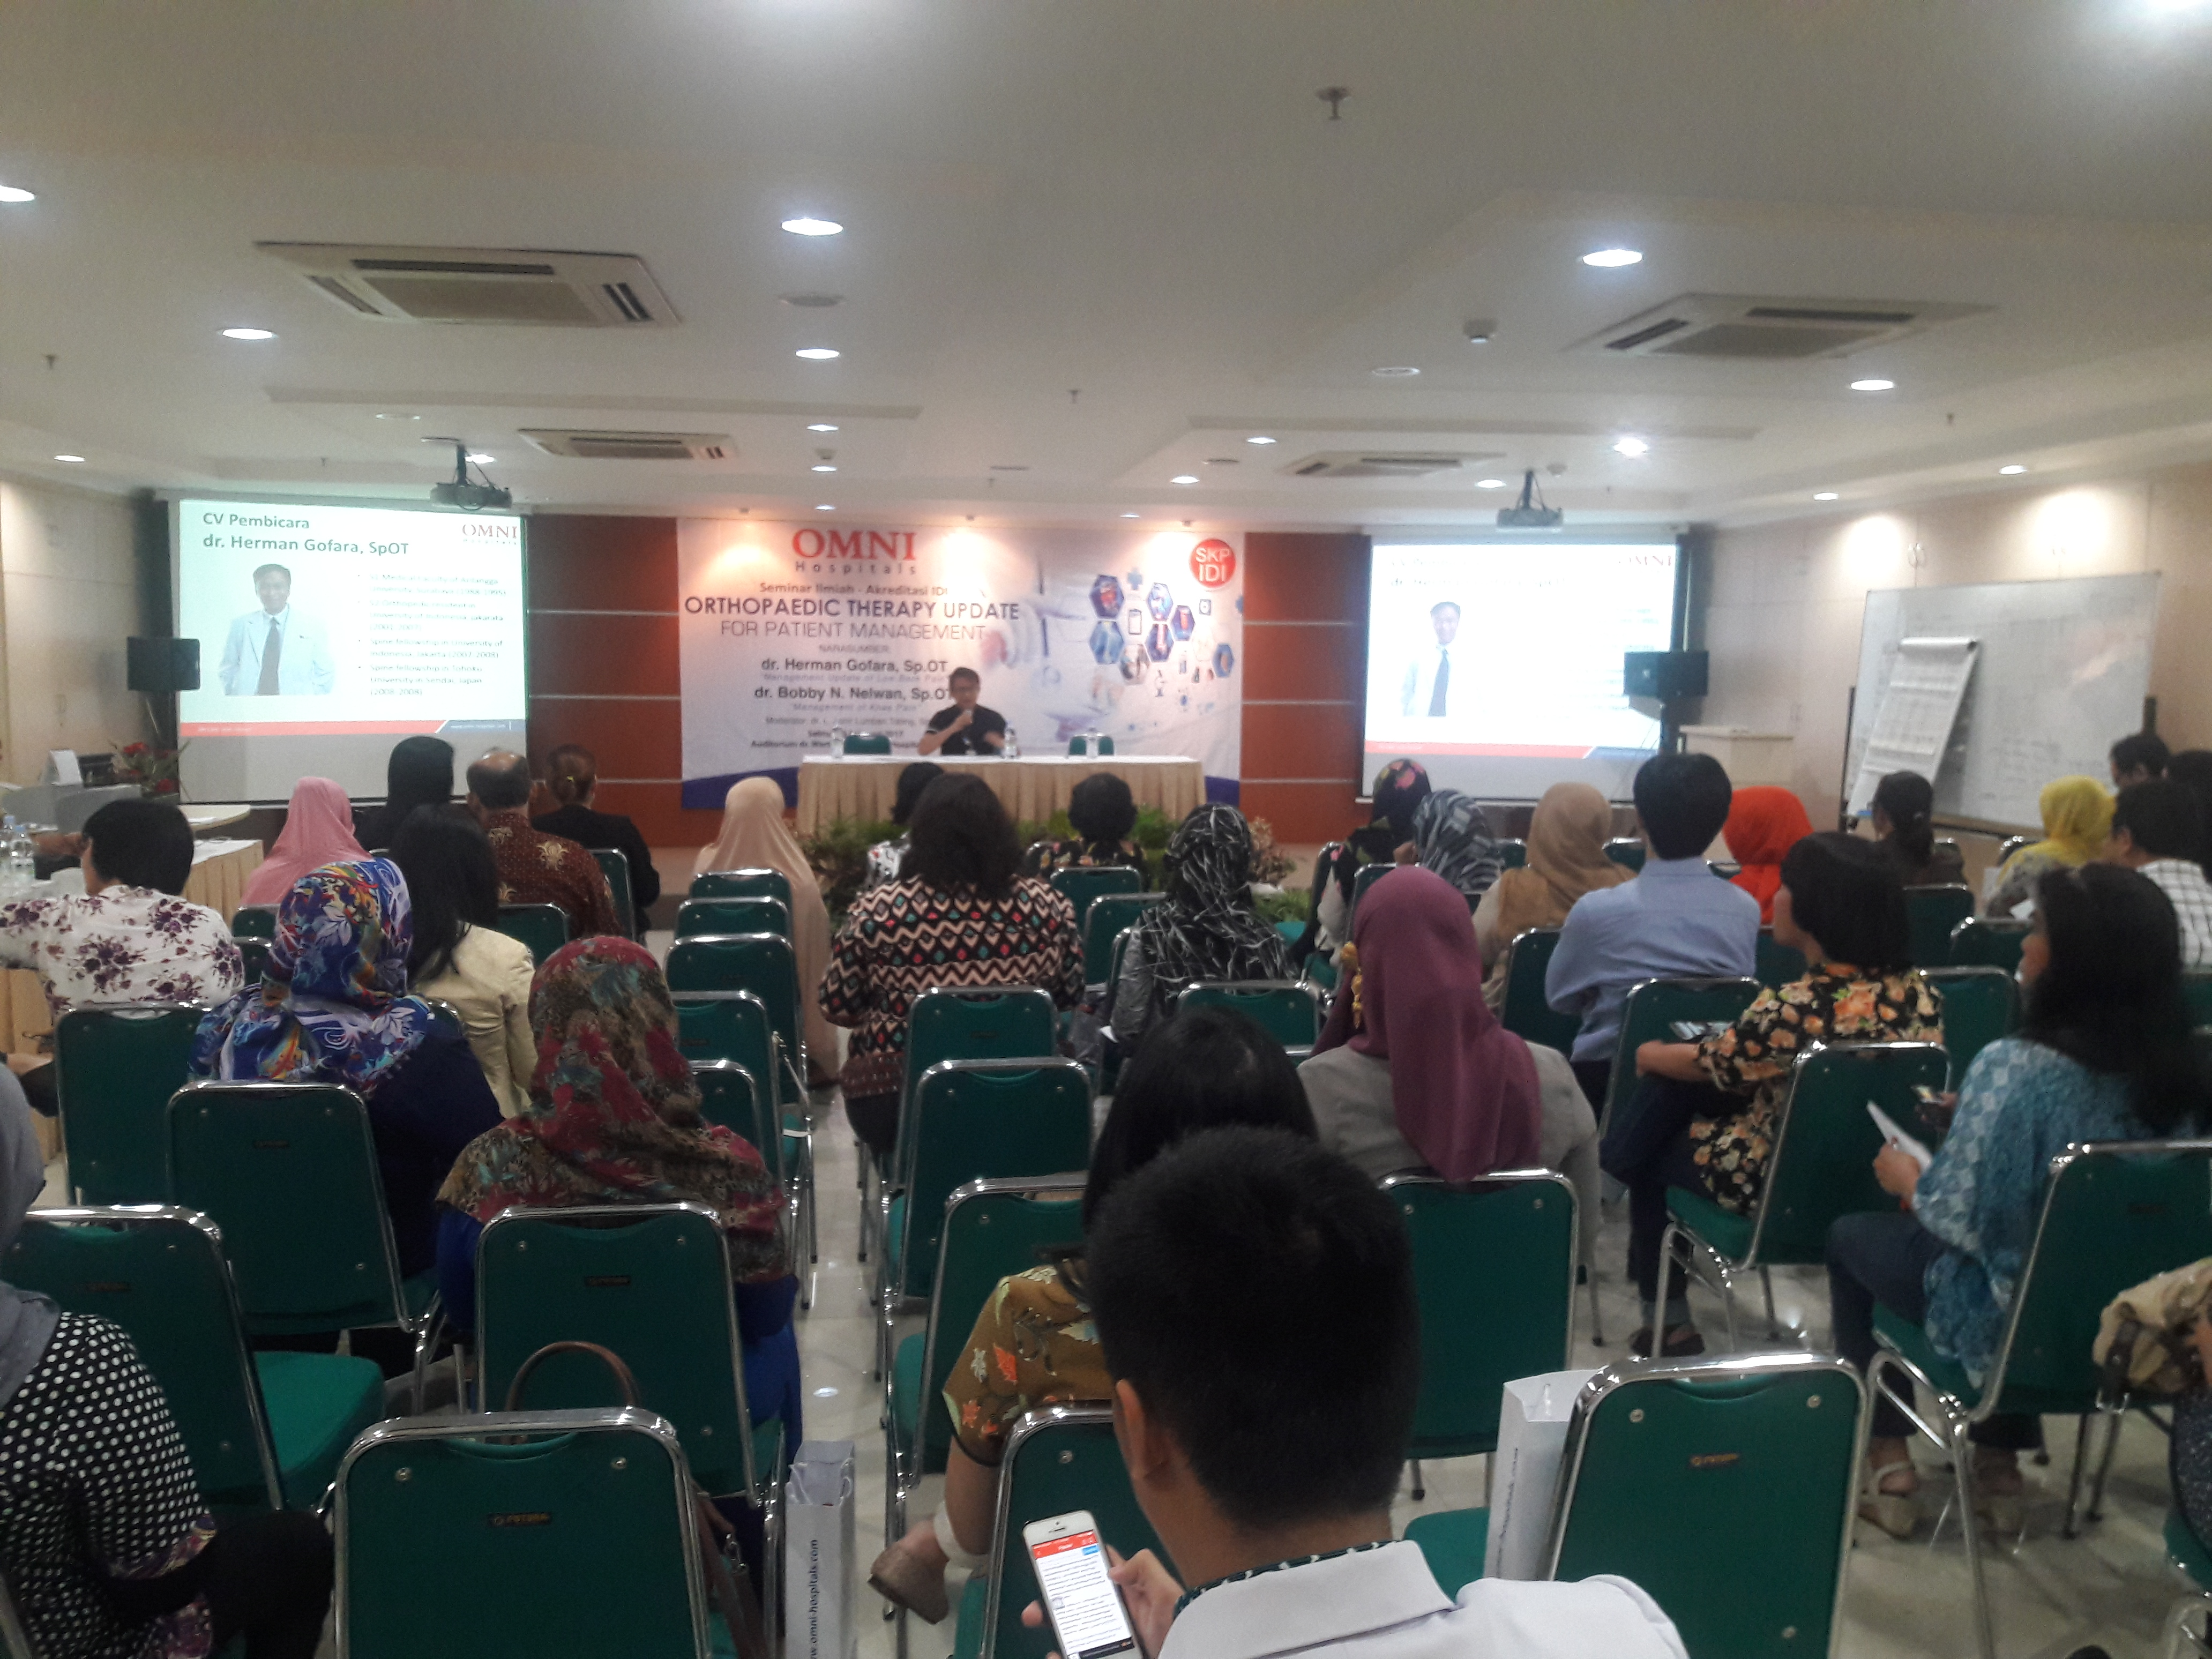 Orthopaedic Therapy Update For Patient Management